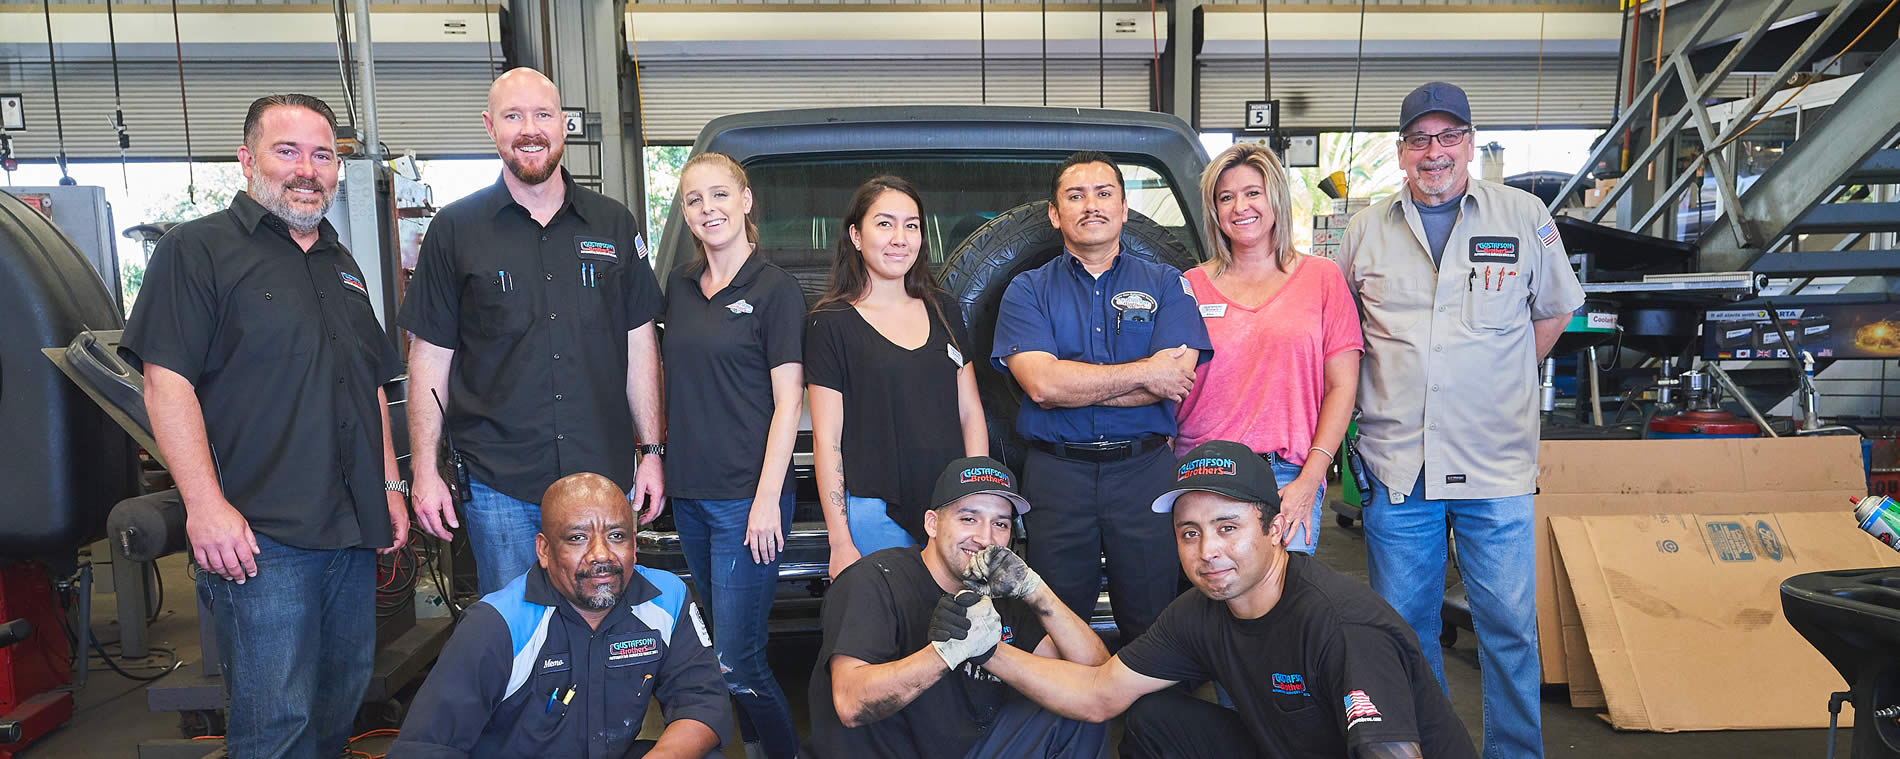 huntington beach auto repair shop & auto body shop employees